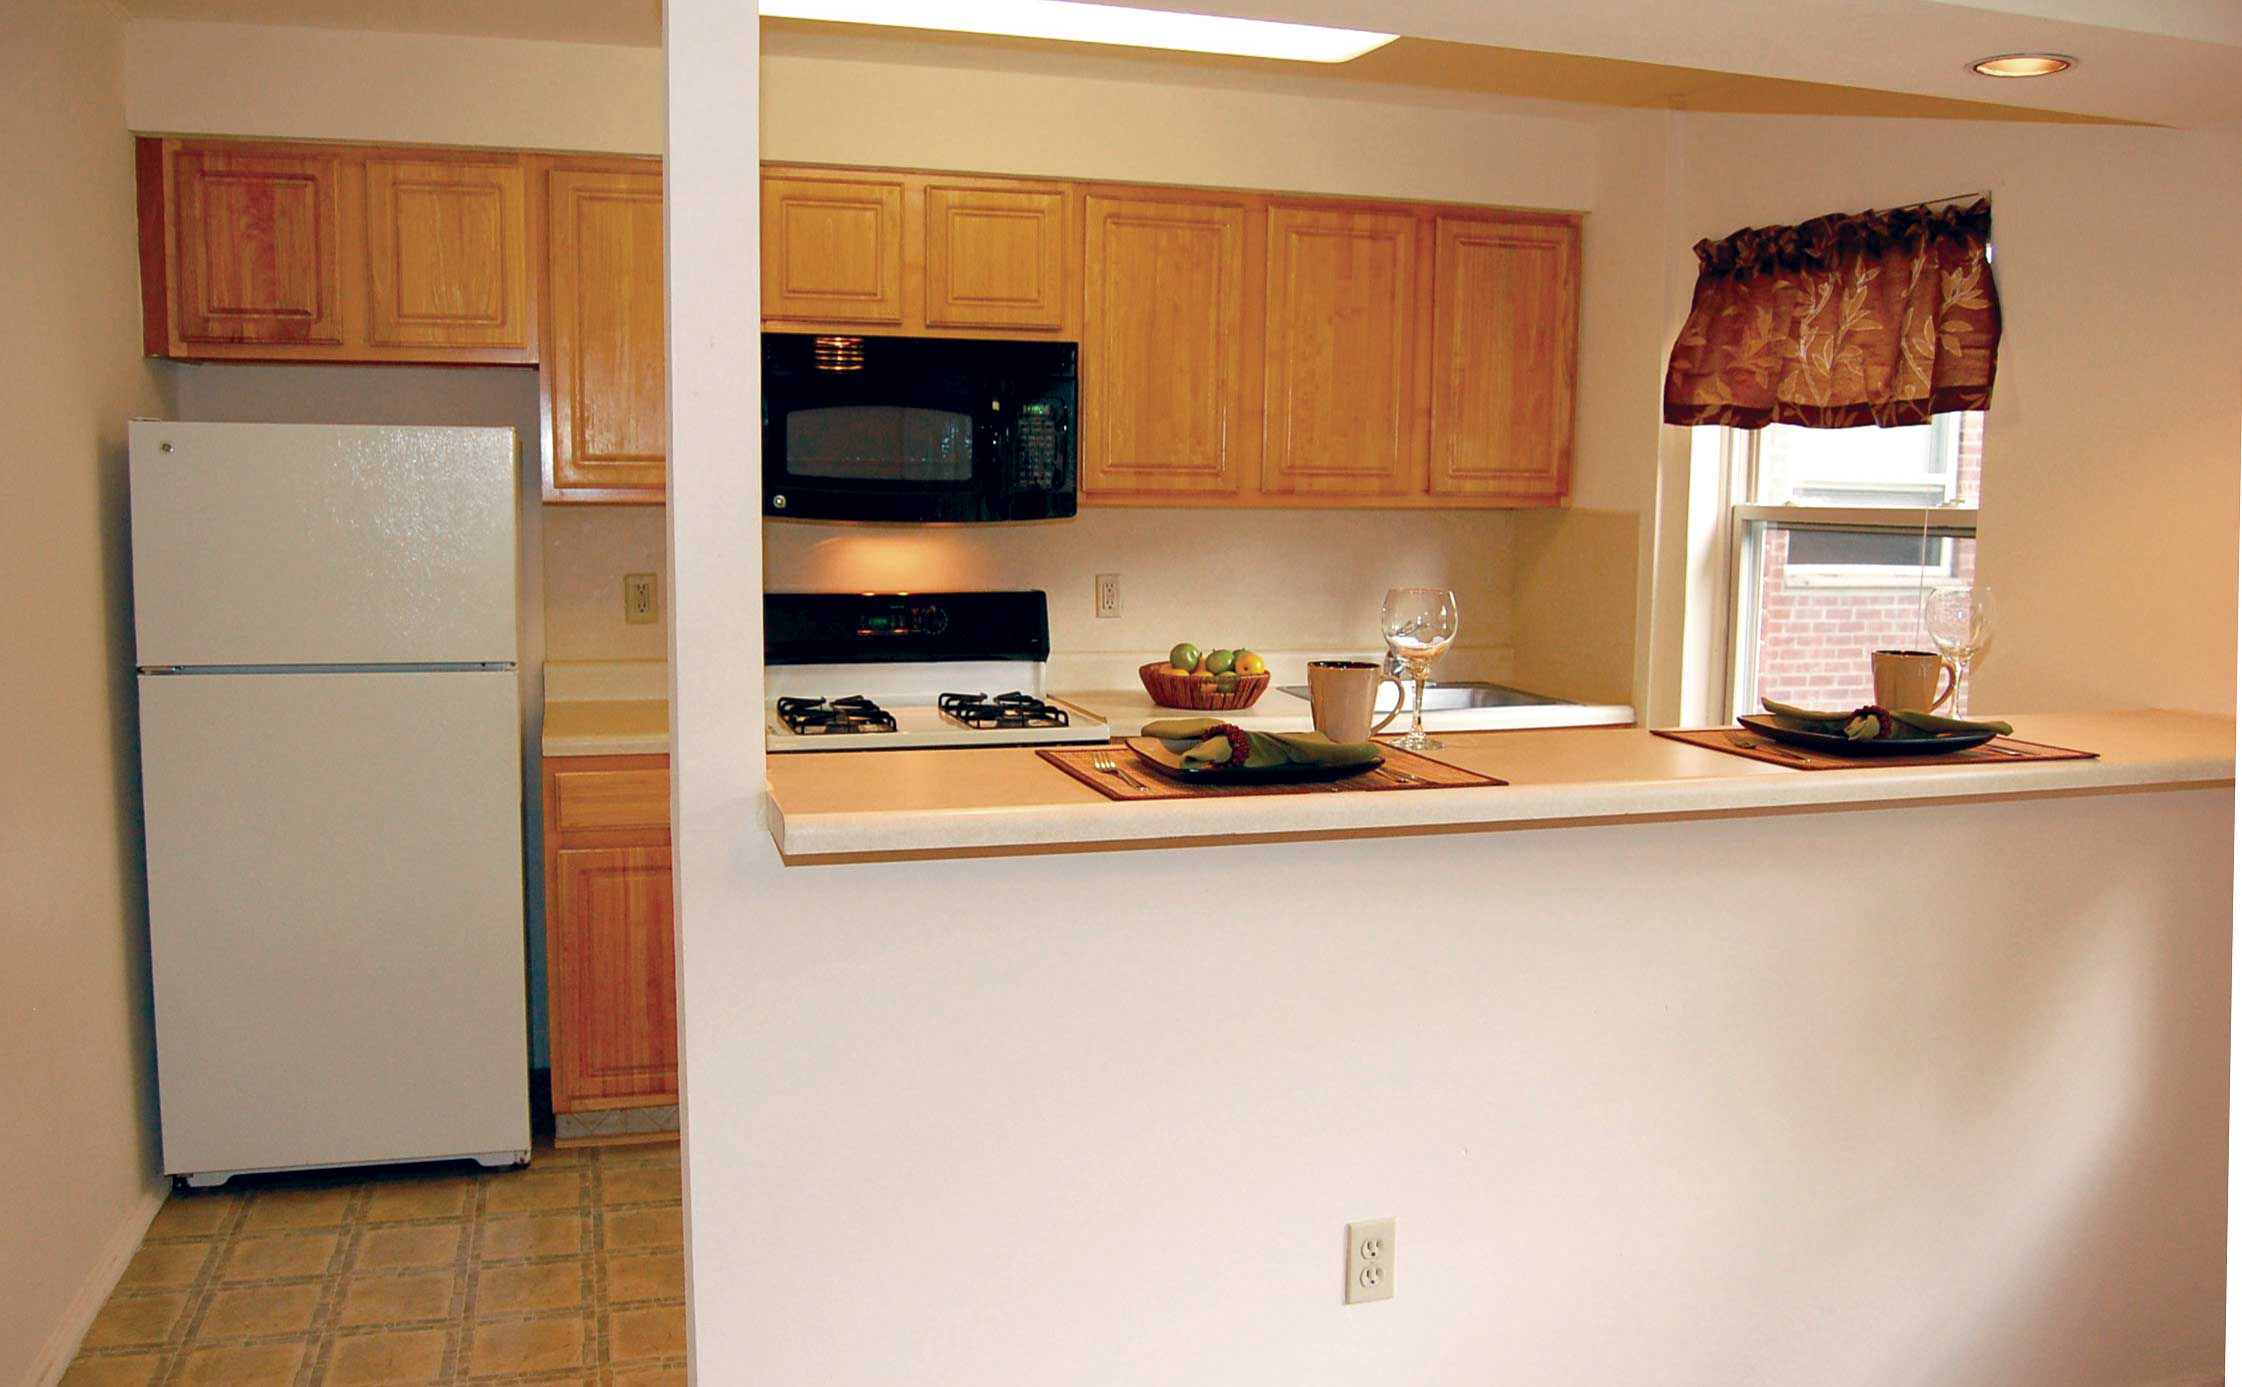 Lakeview Apartments is tranquil and away from the hustle and bustle of the Big Apple.